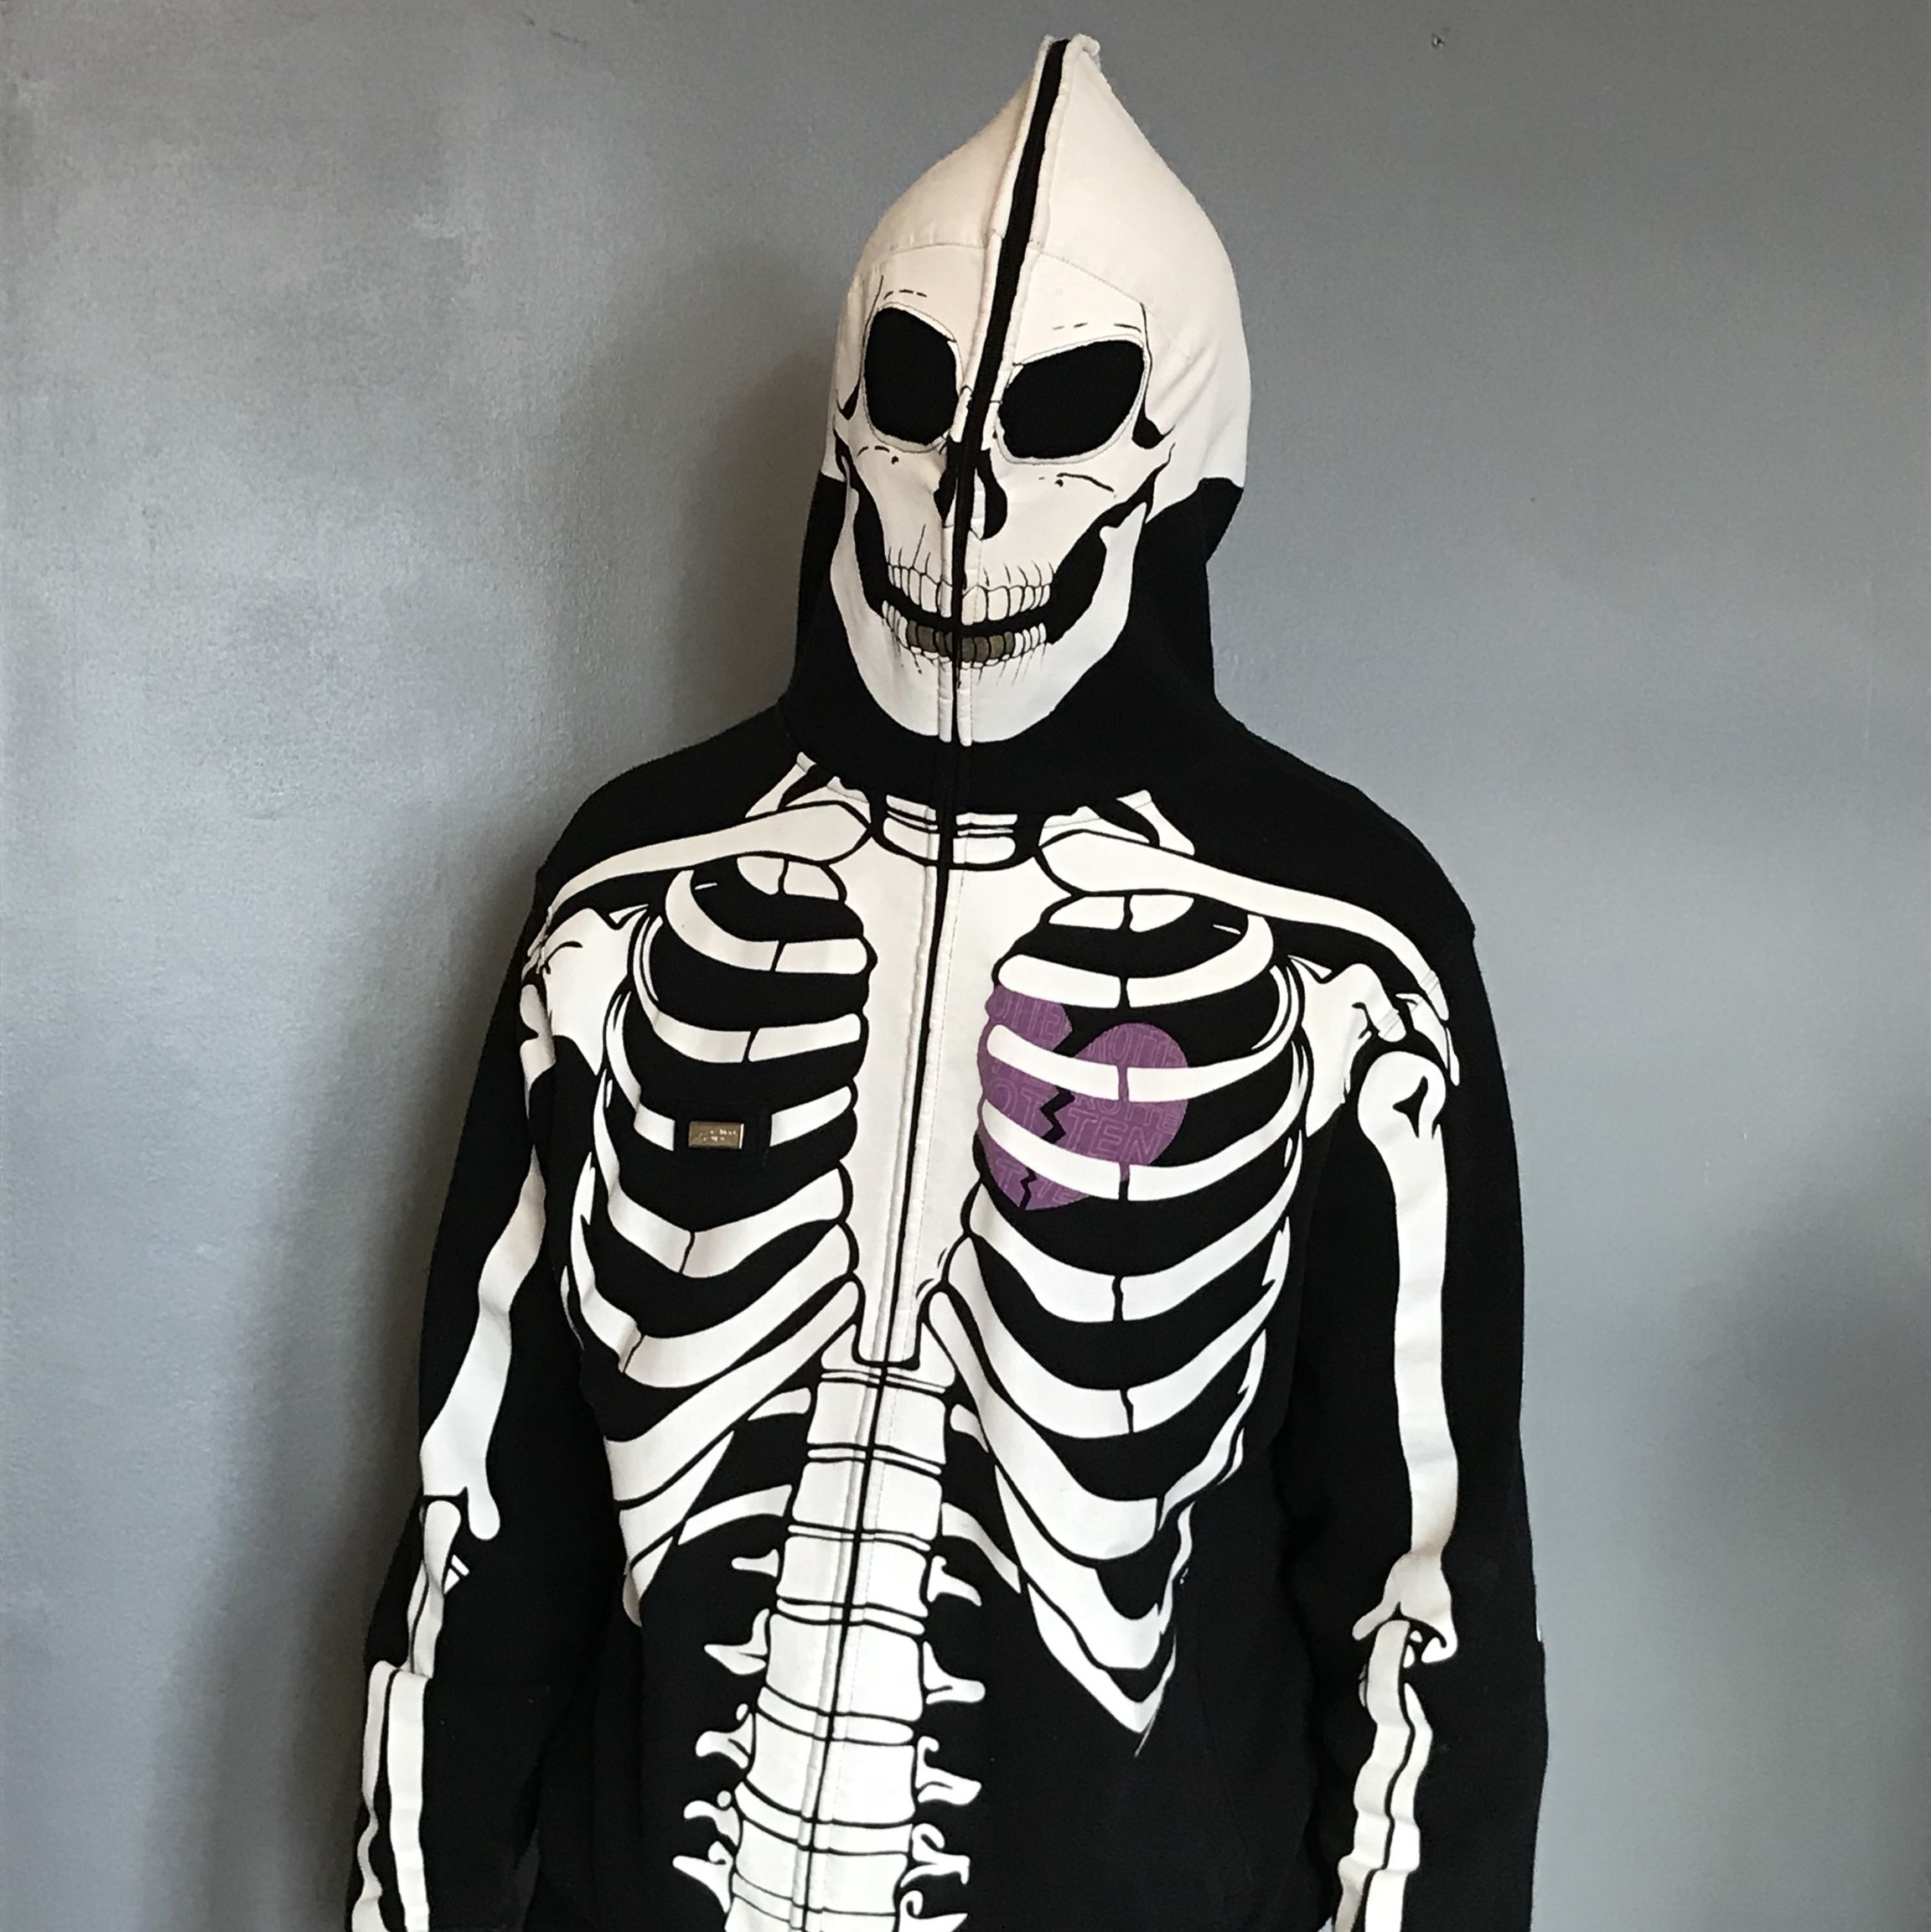 Lrg Skeleton Hoodie Size S Condition 9 10 Signs Depop